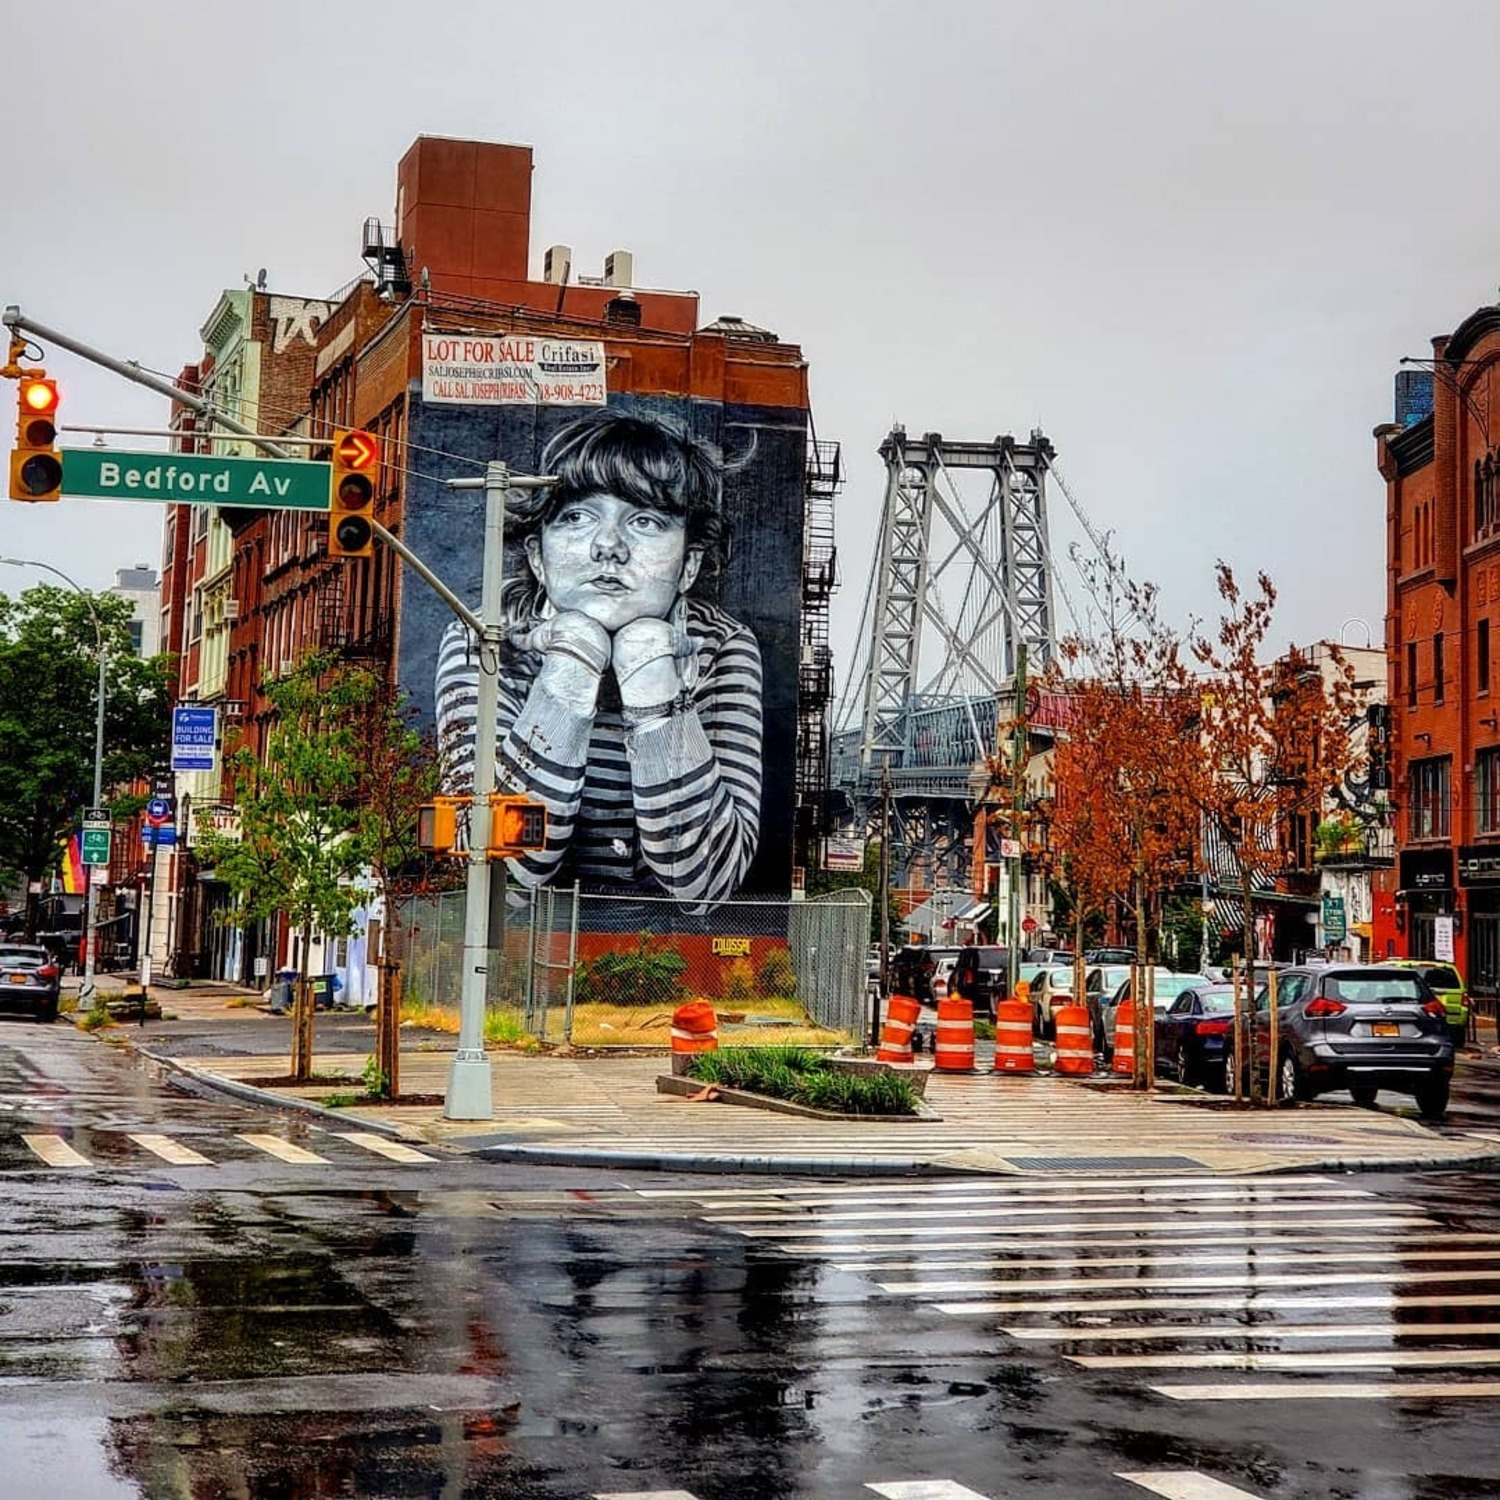 Bedford Avenue & Broadway, Williamsburg, Brooklyn